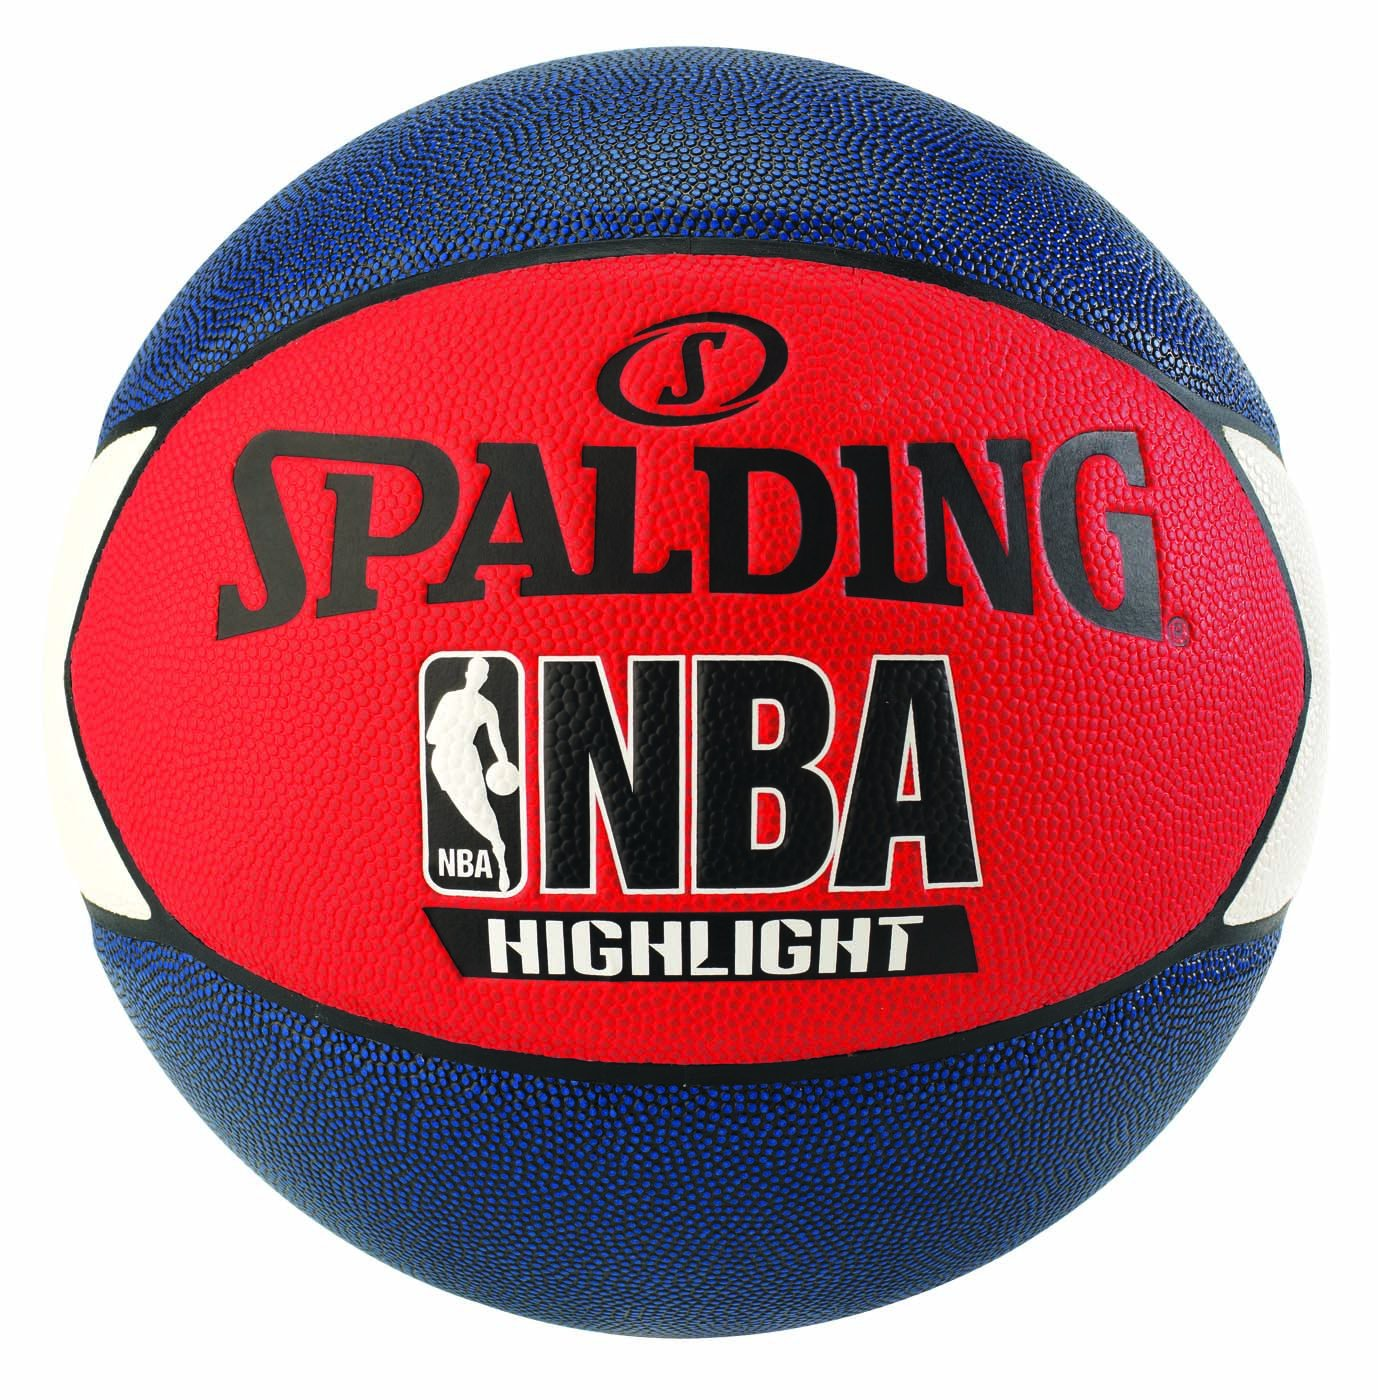 Spalding NBA Highlight Ball Basketball schwarz/Silber 7 SPAPO|#Spalding 3001550029617